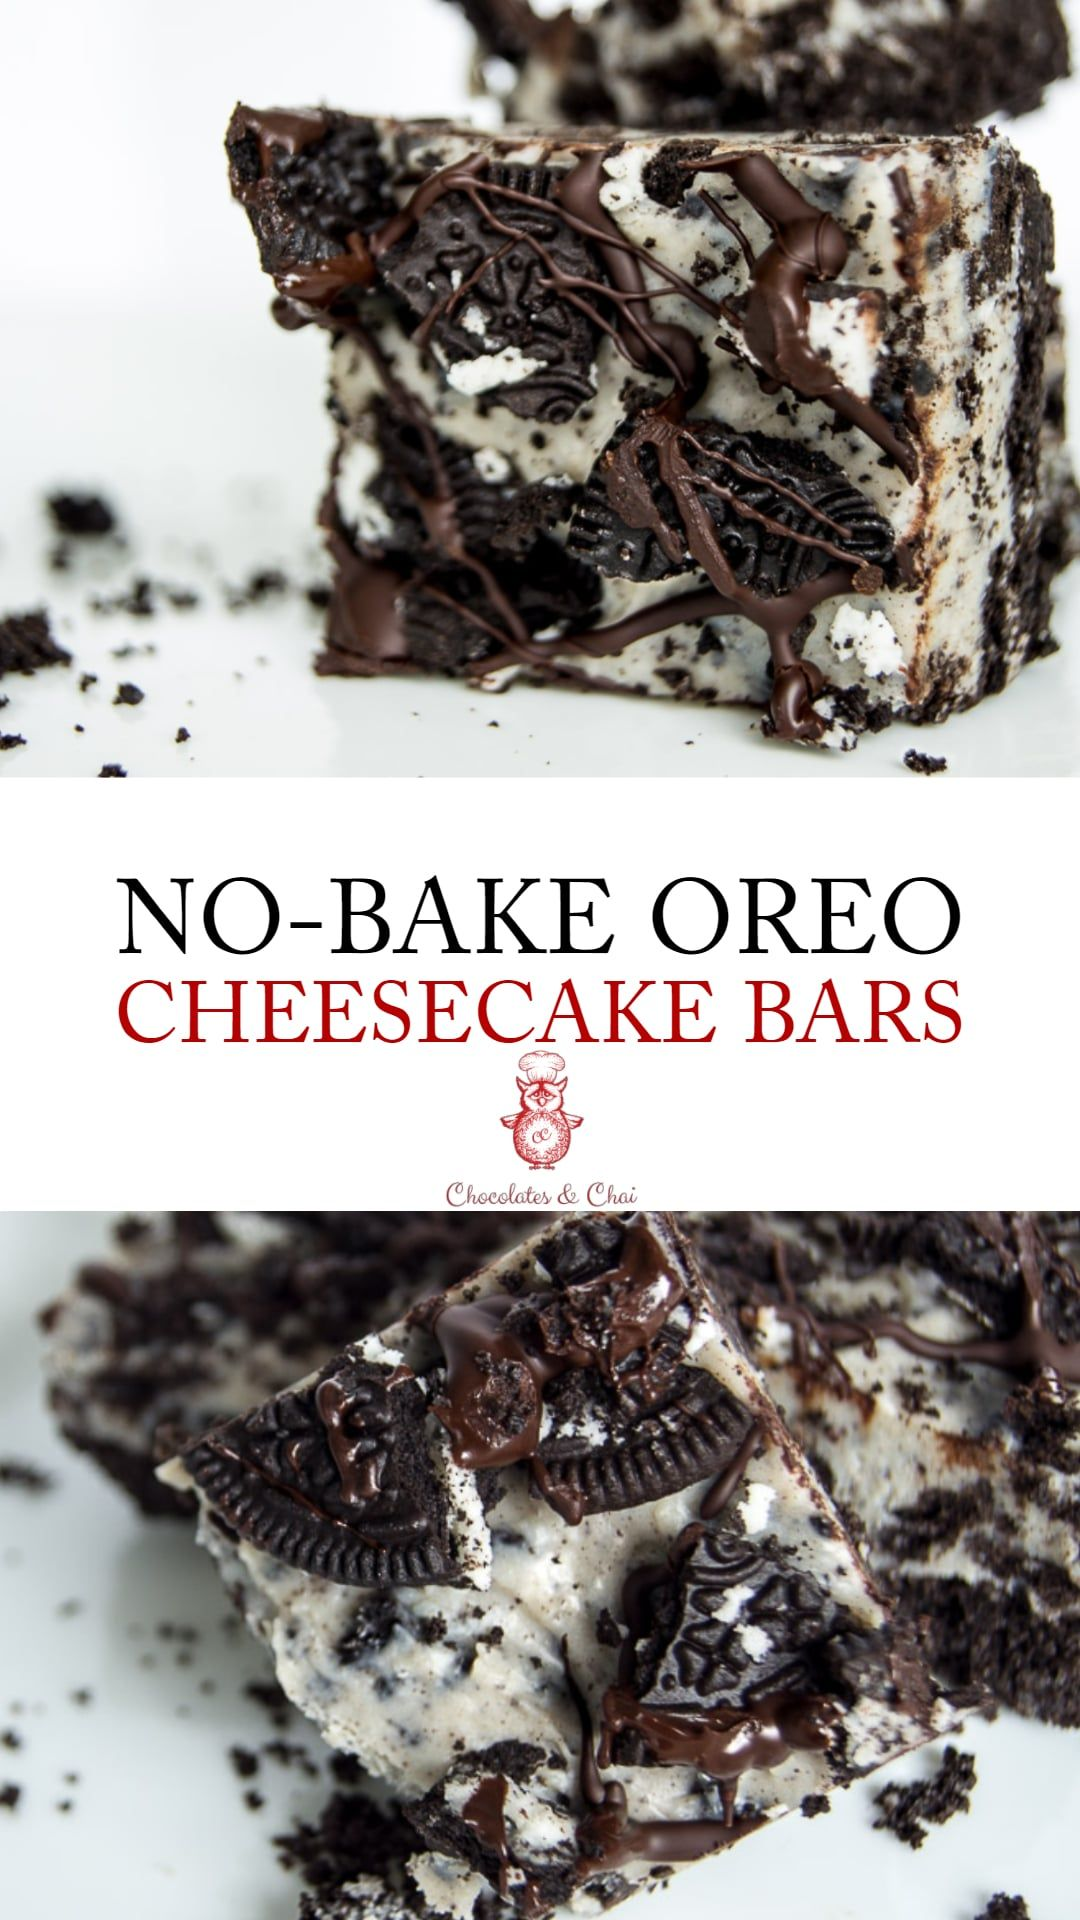 Photo of No Bake Oreo Cheesecake Bars